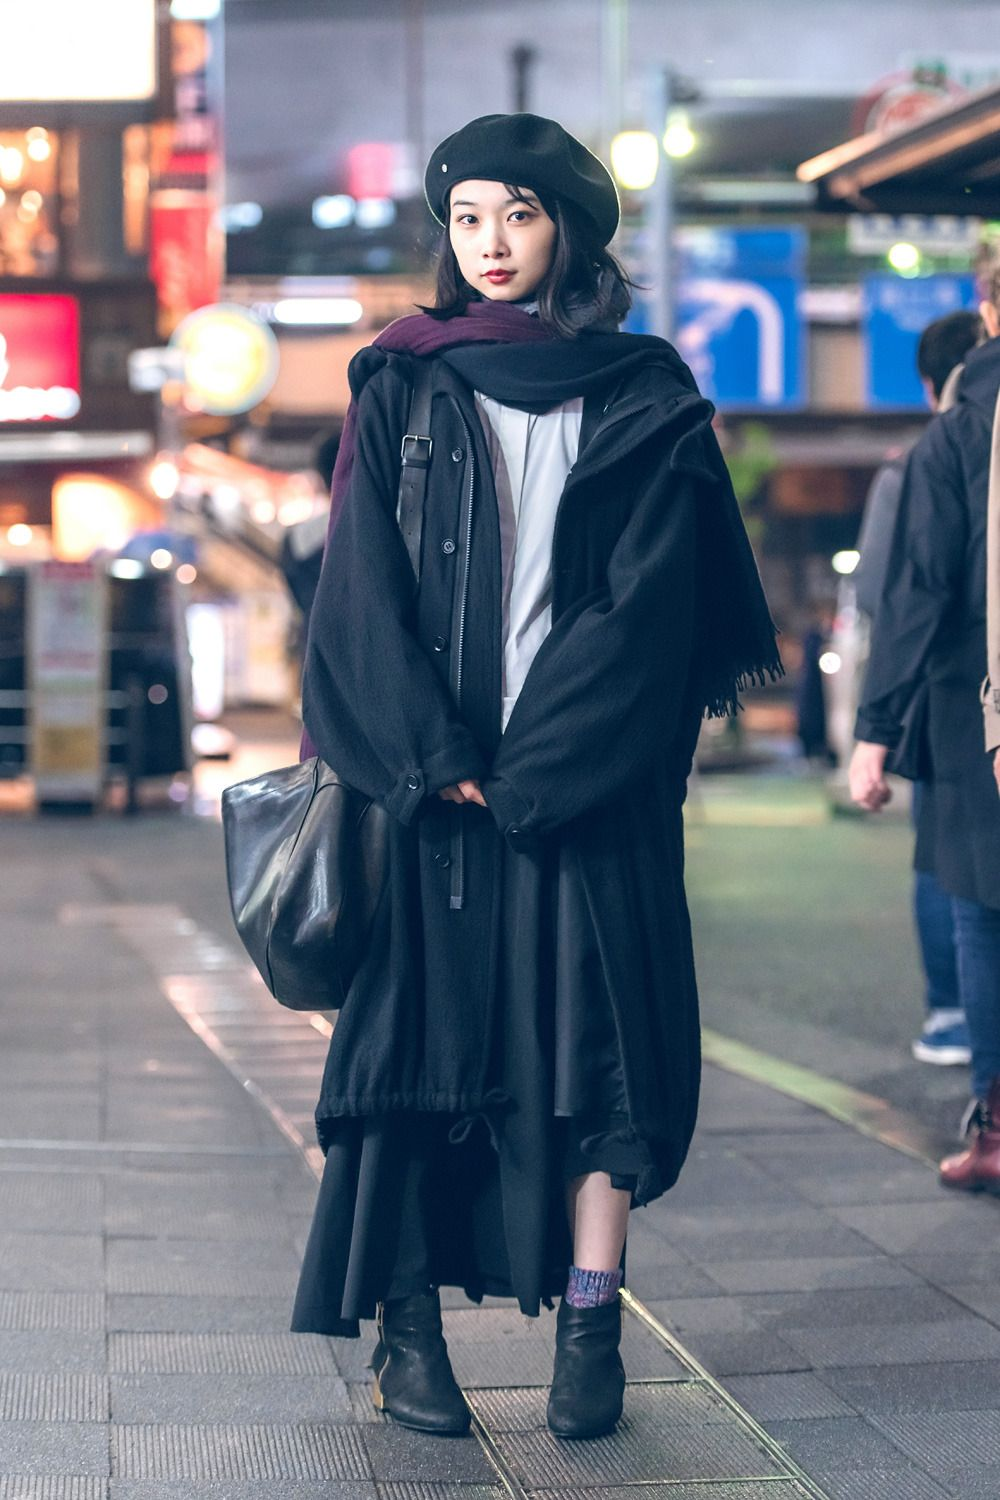 6db8f14bf tokyo-fashion: 20-year-old Japanese college student Mika wearing a  minimalist monochrome look on the street in Shibuya at night. Mika speaks  fluent English ...